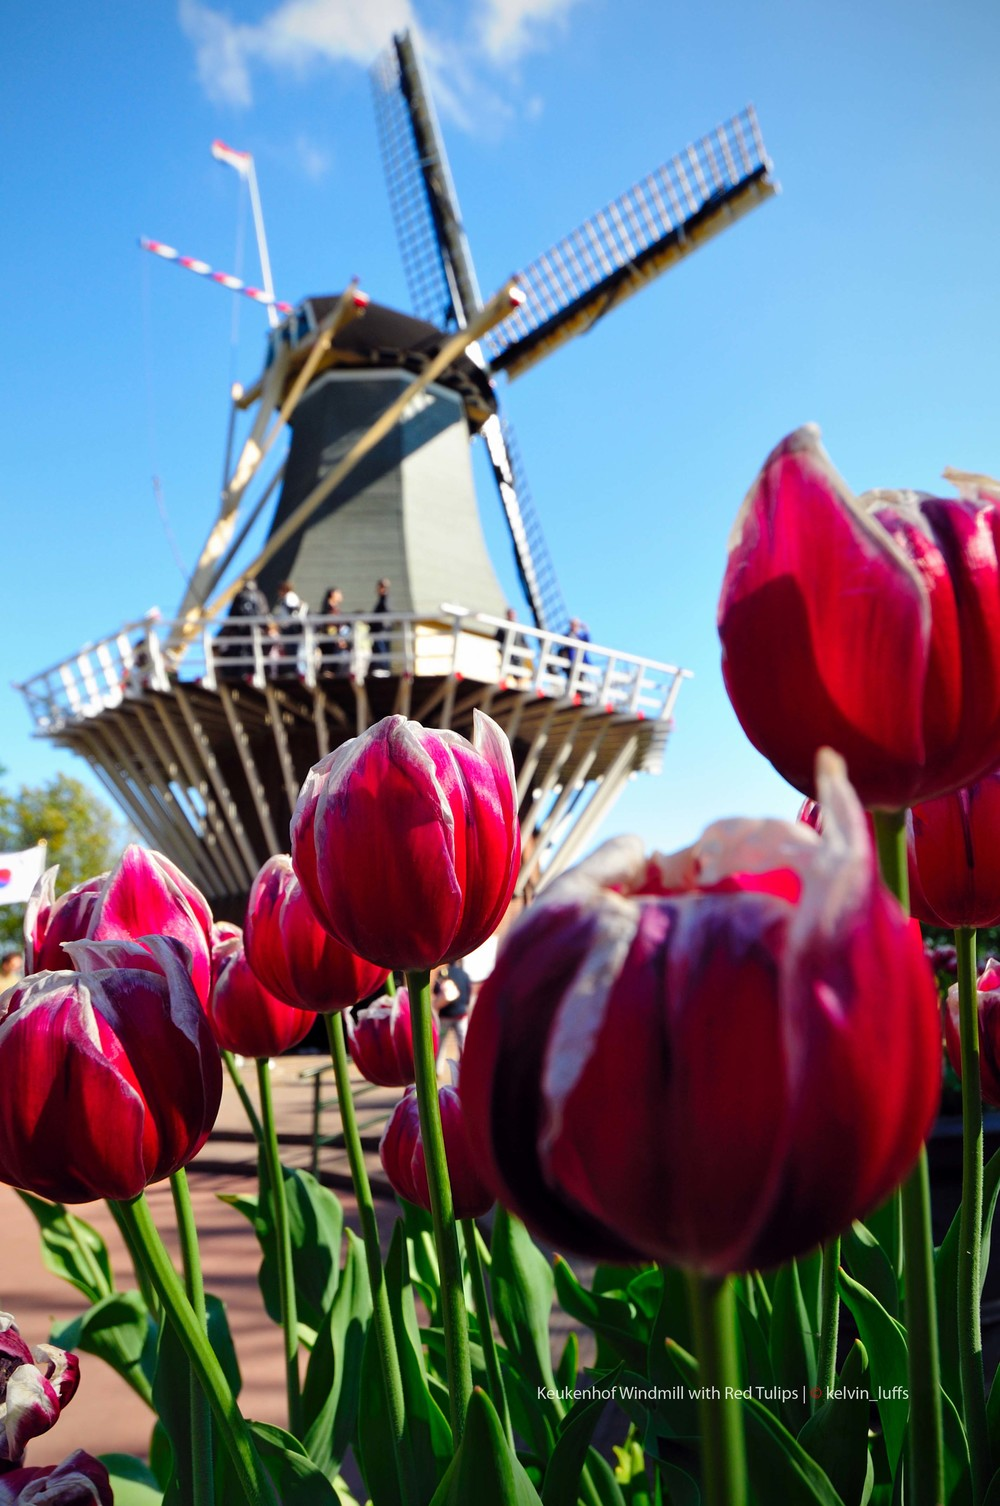 Keukenhof Windmill with Red Tulips.jpg